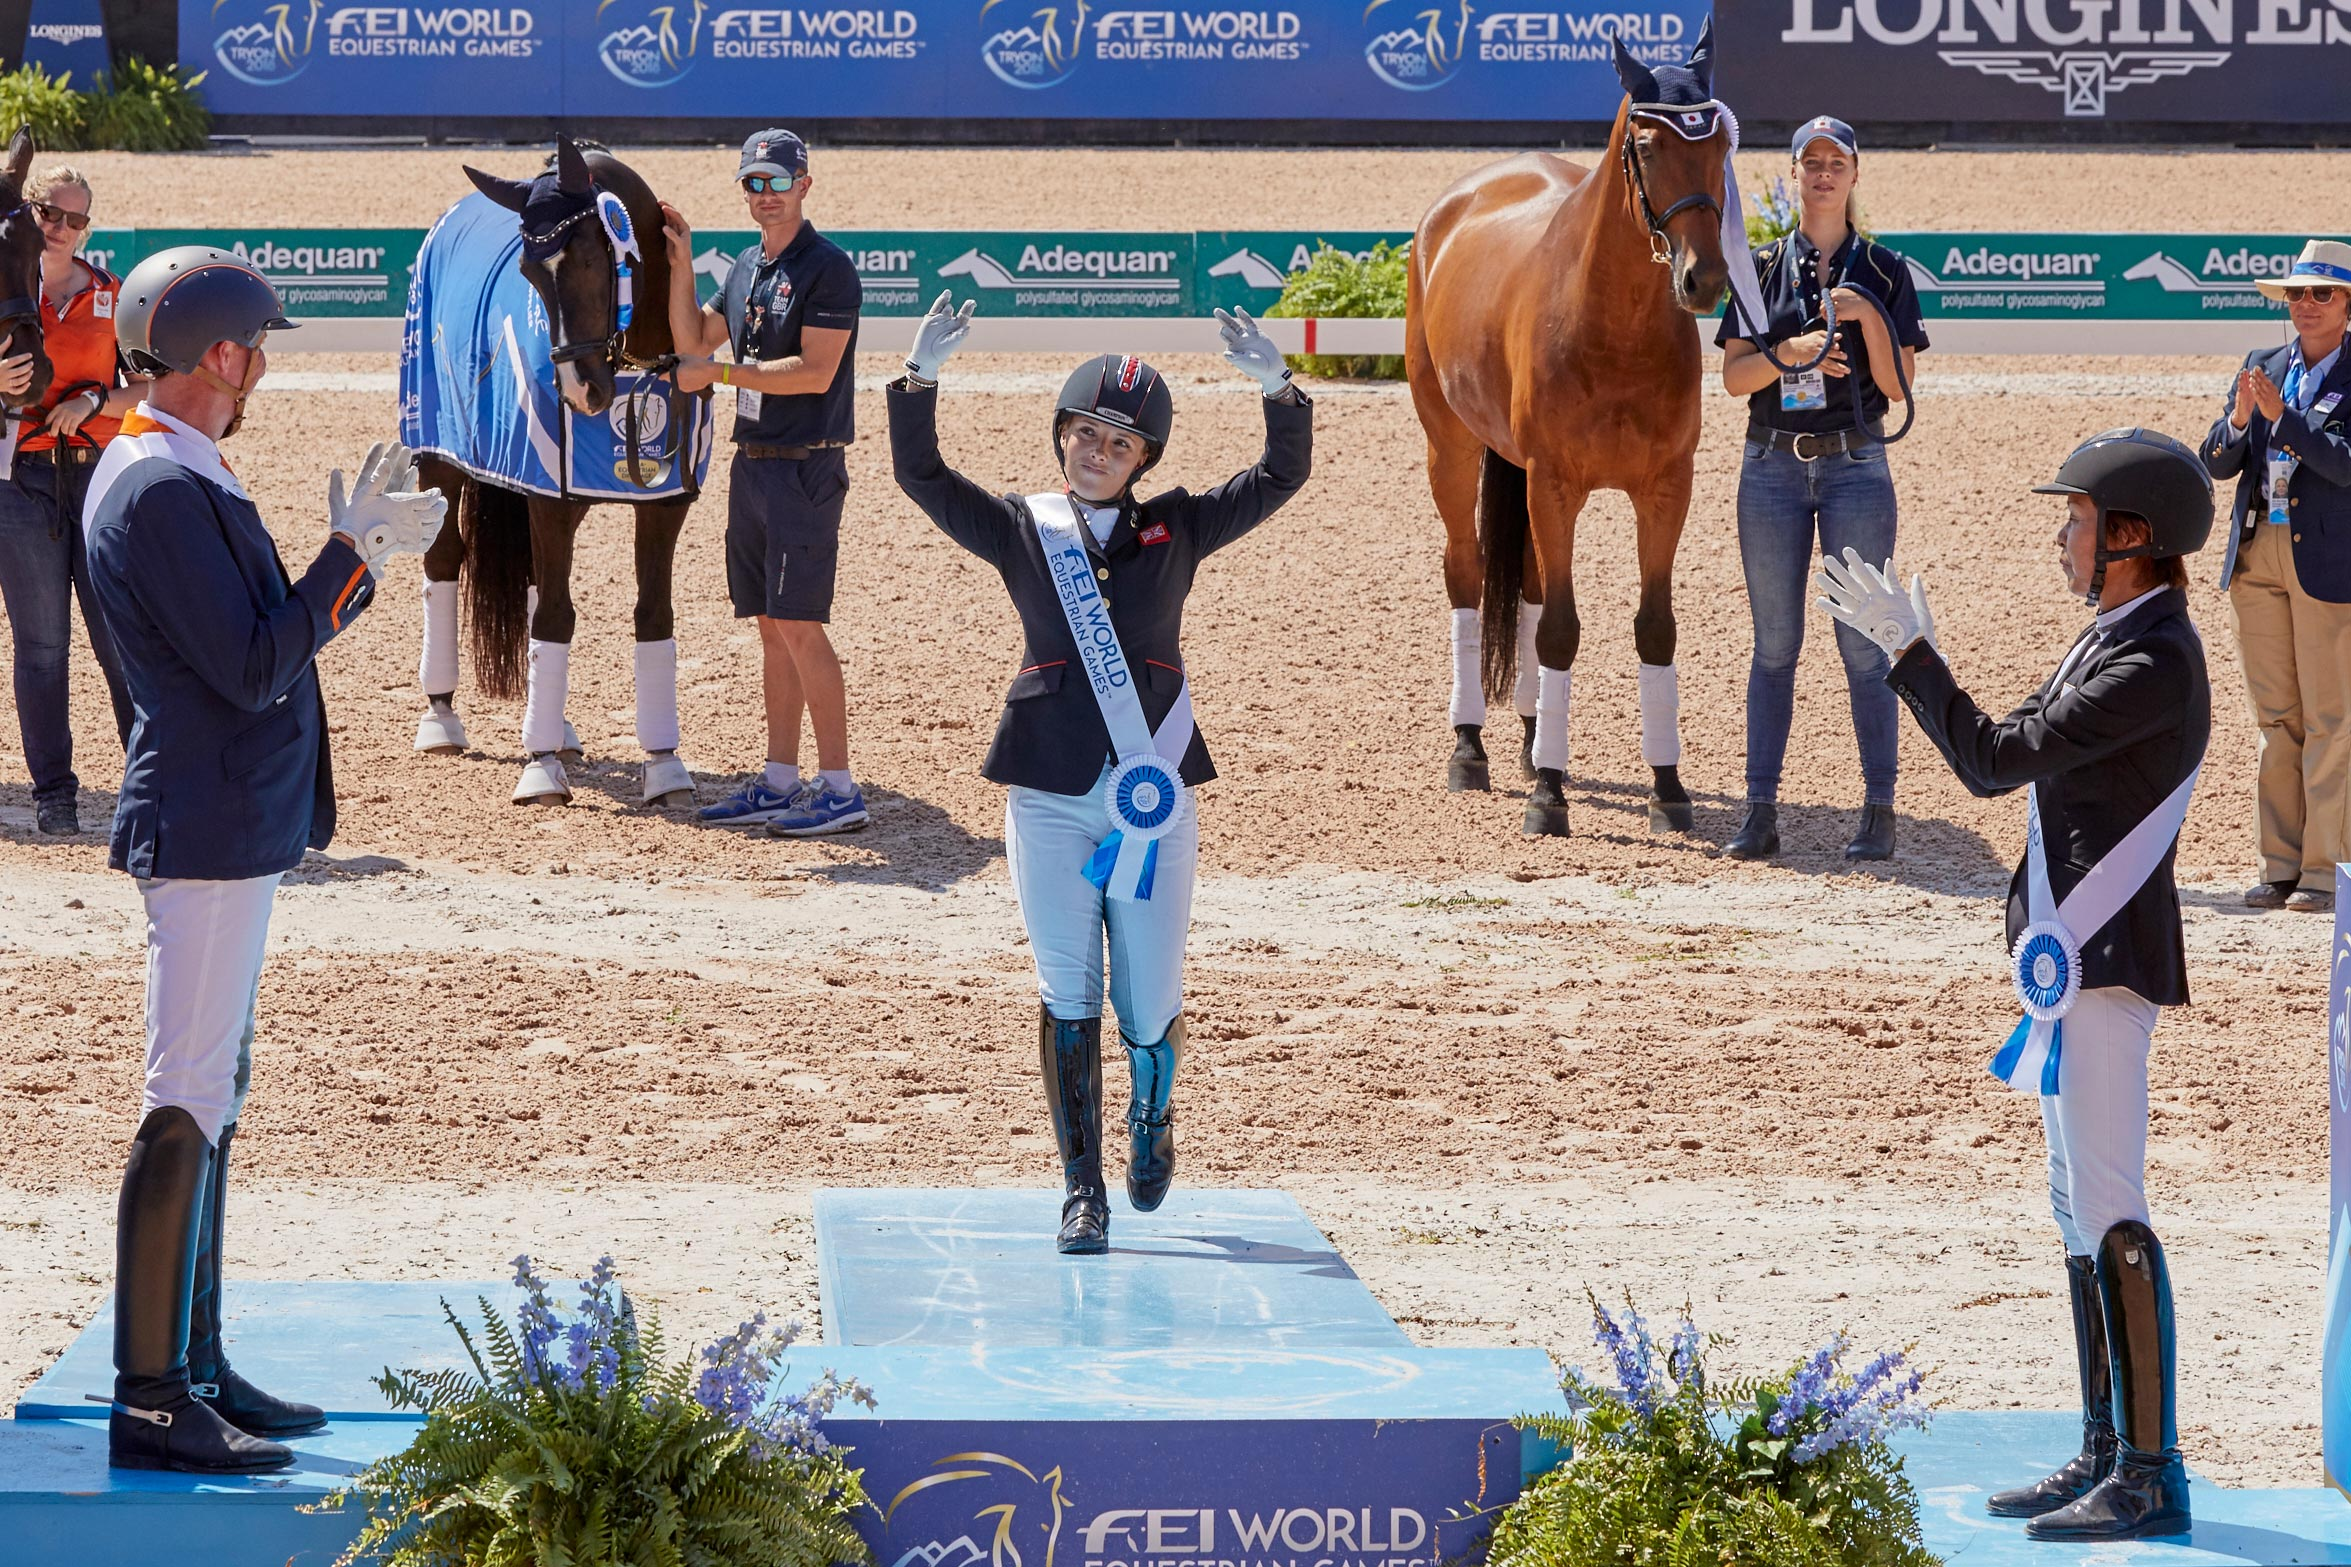 FEI World Equestrian Games™ Tryon USA Gold Medalist takes to the podium Sophie Wells GBR,Silver to Frank Hosmar NL and Bronze to Tomoko Nakamura JP Photo FEI/Liz Gregg